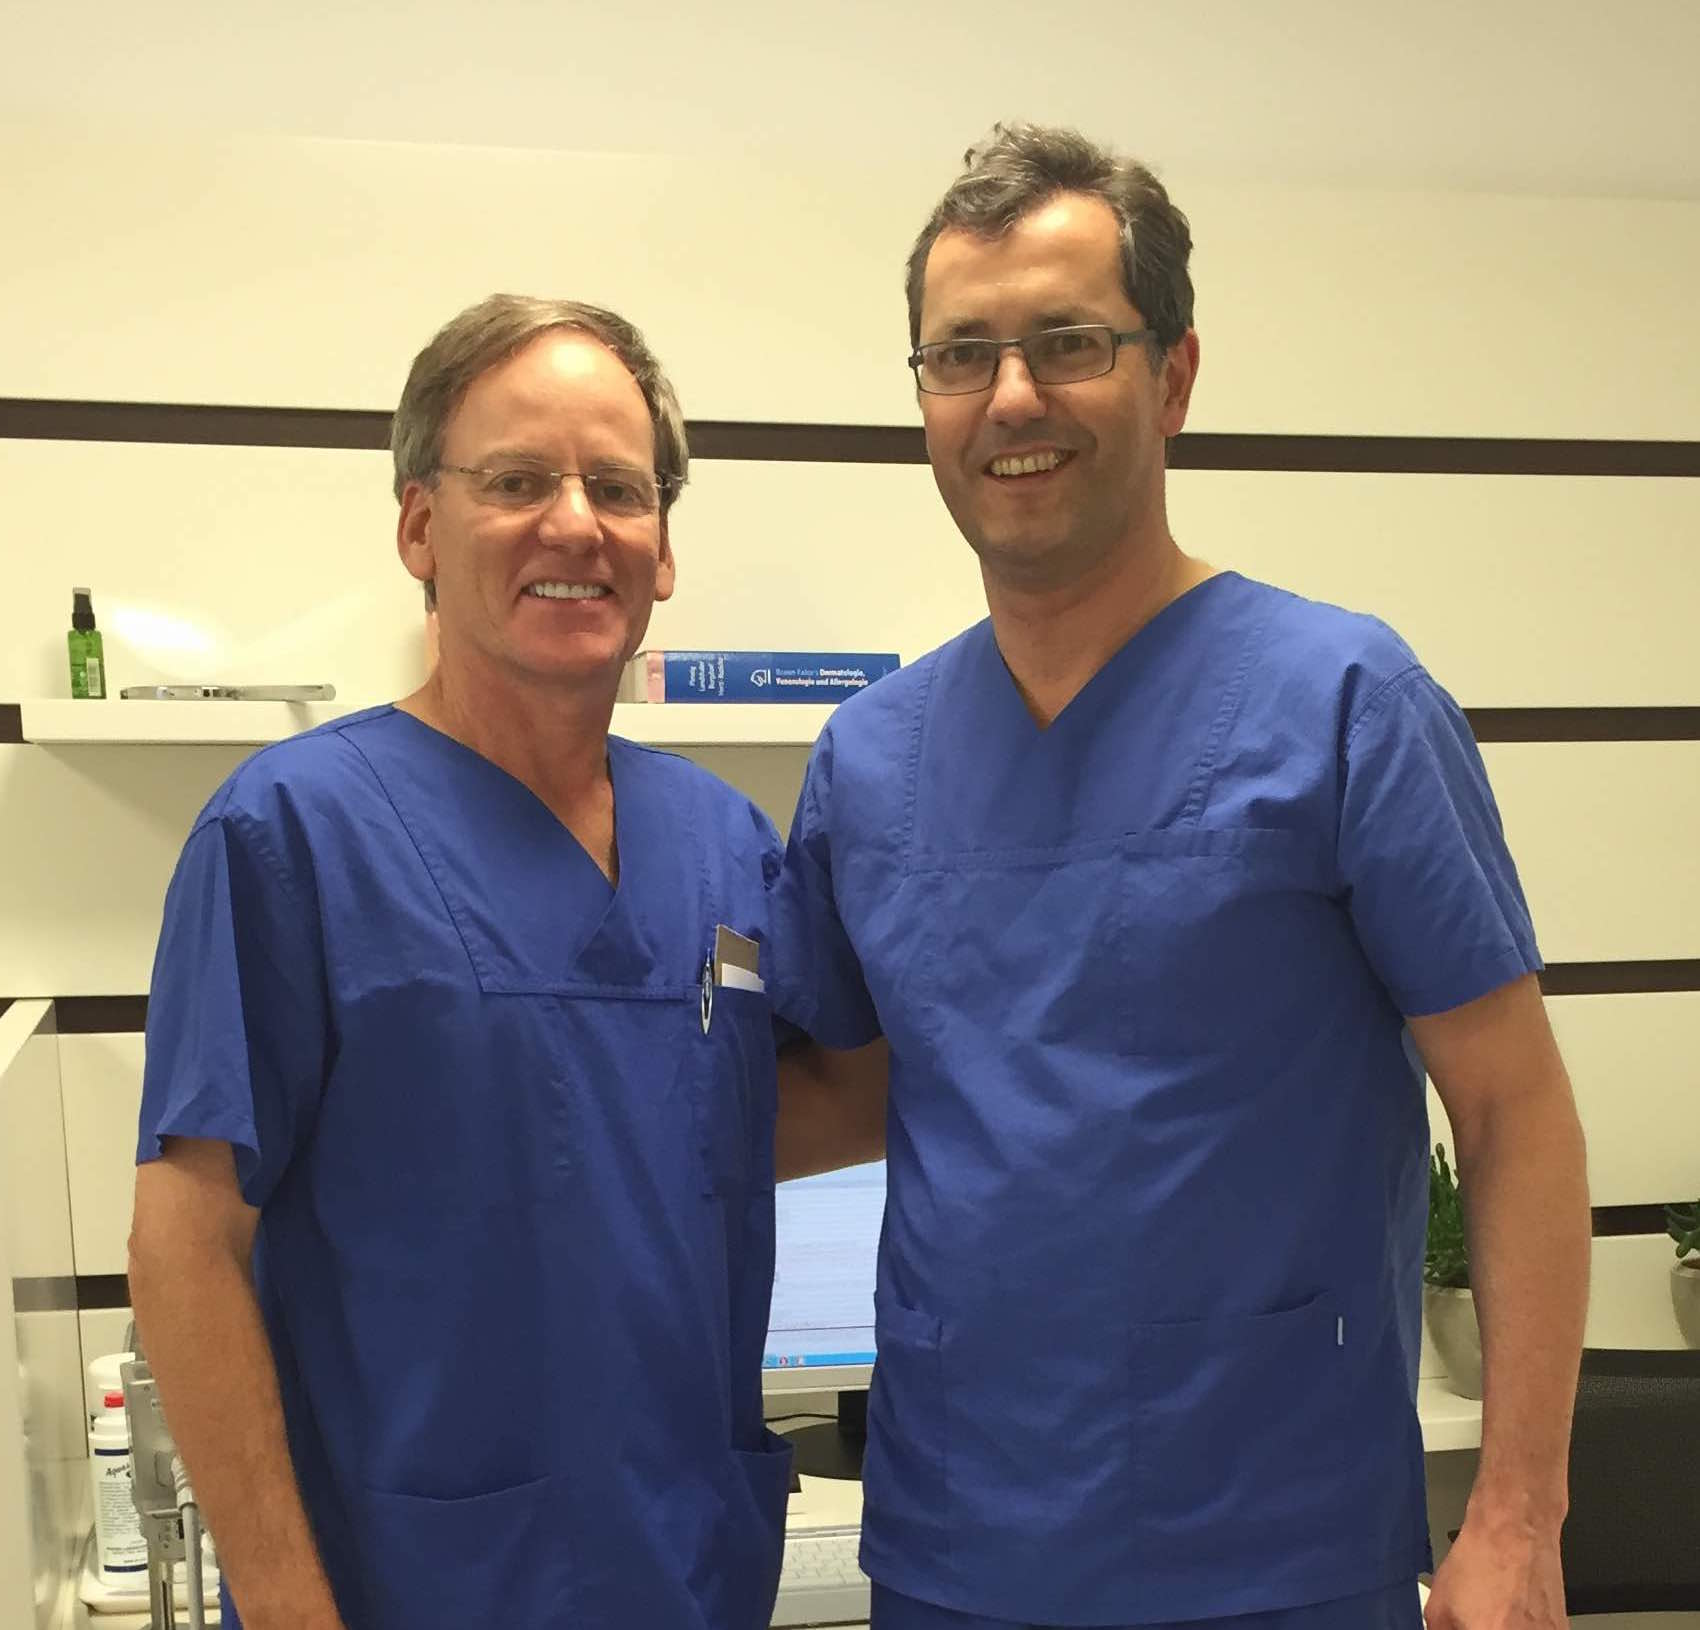 Dr. Tapper (left) with Dr. Rapprich (right) in Bad Soden, Germany